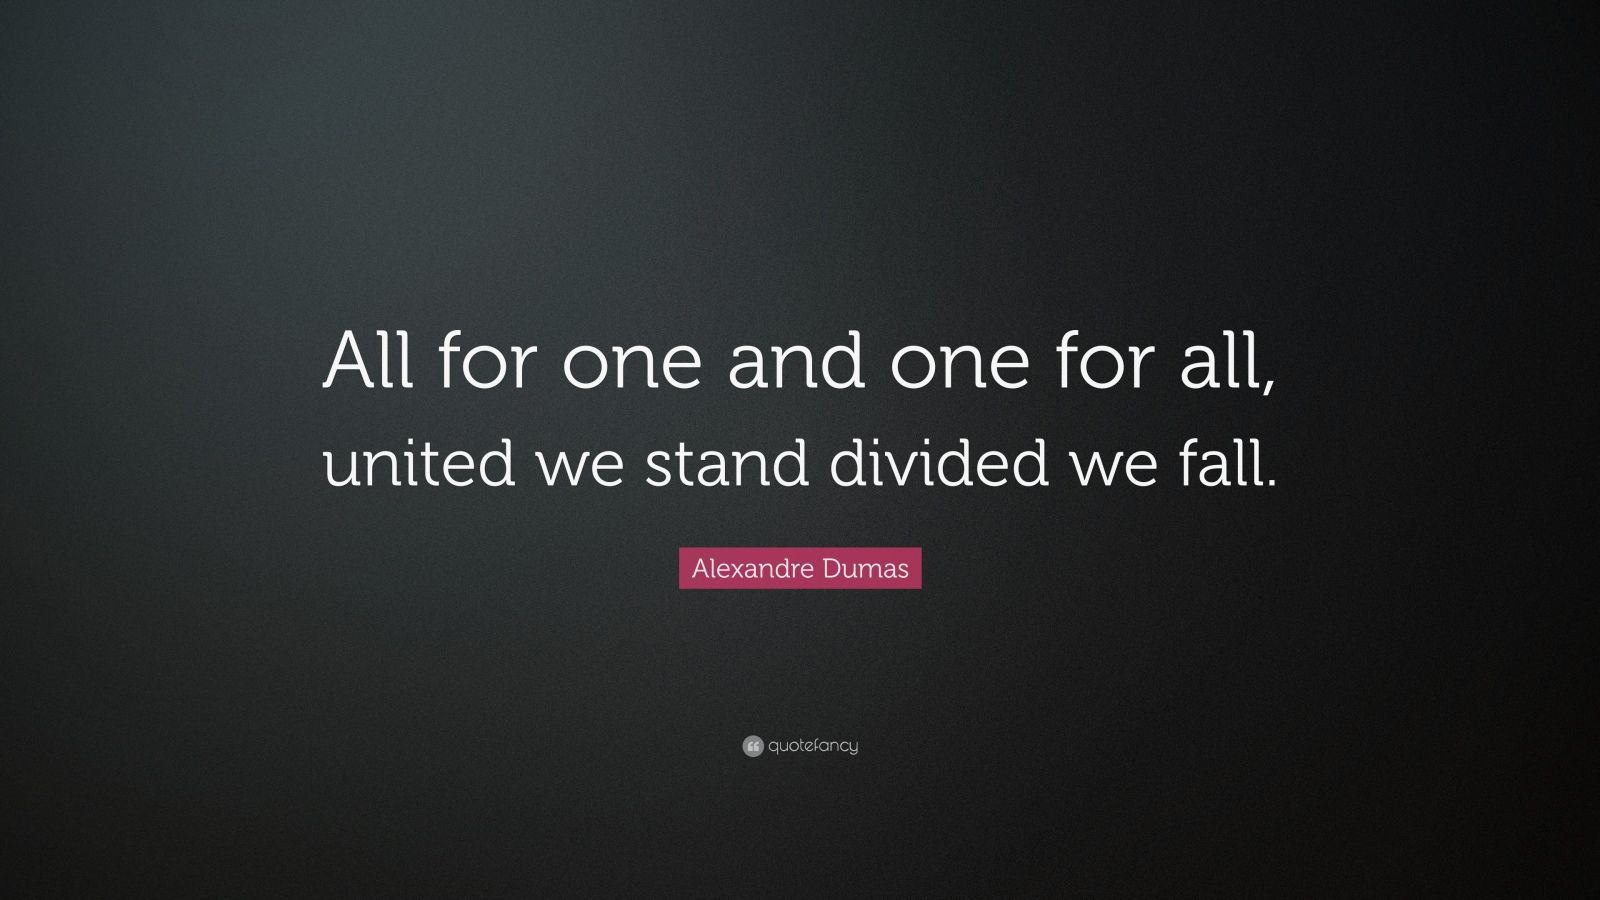 Divided We Fall Wallpaper Alexandre Dumas Quote All For One And One For All